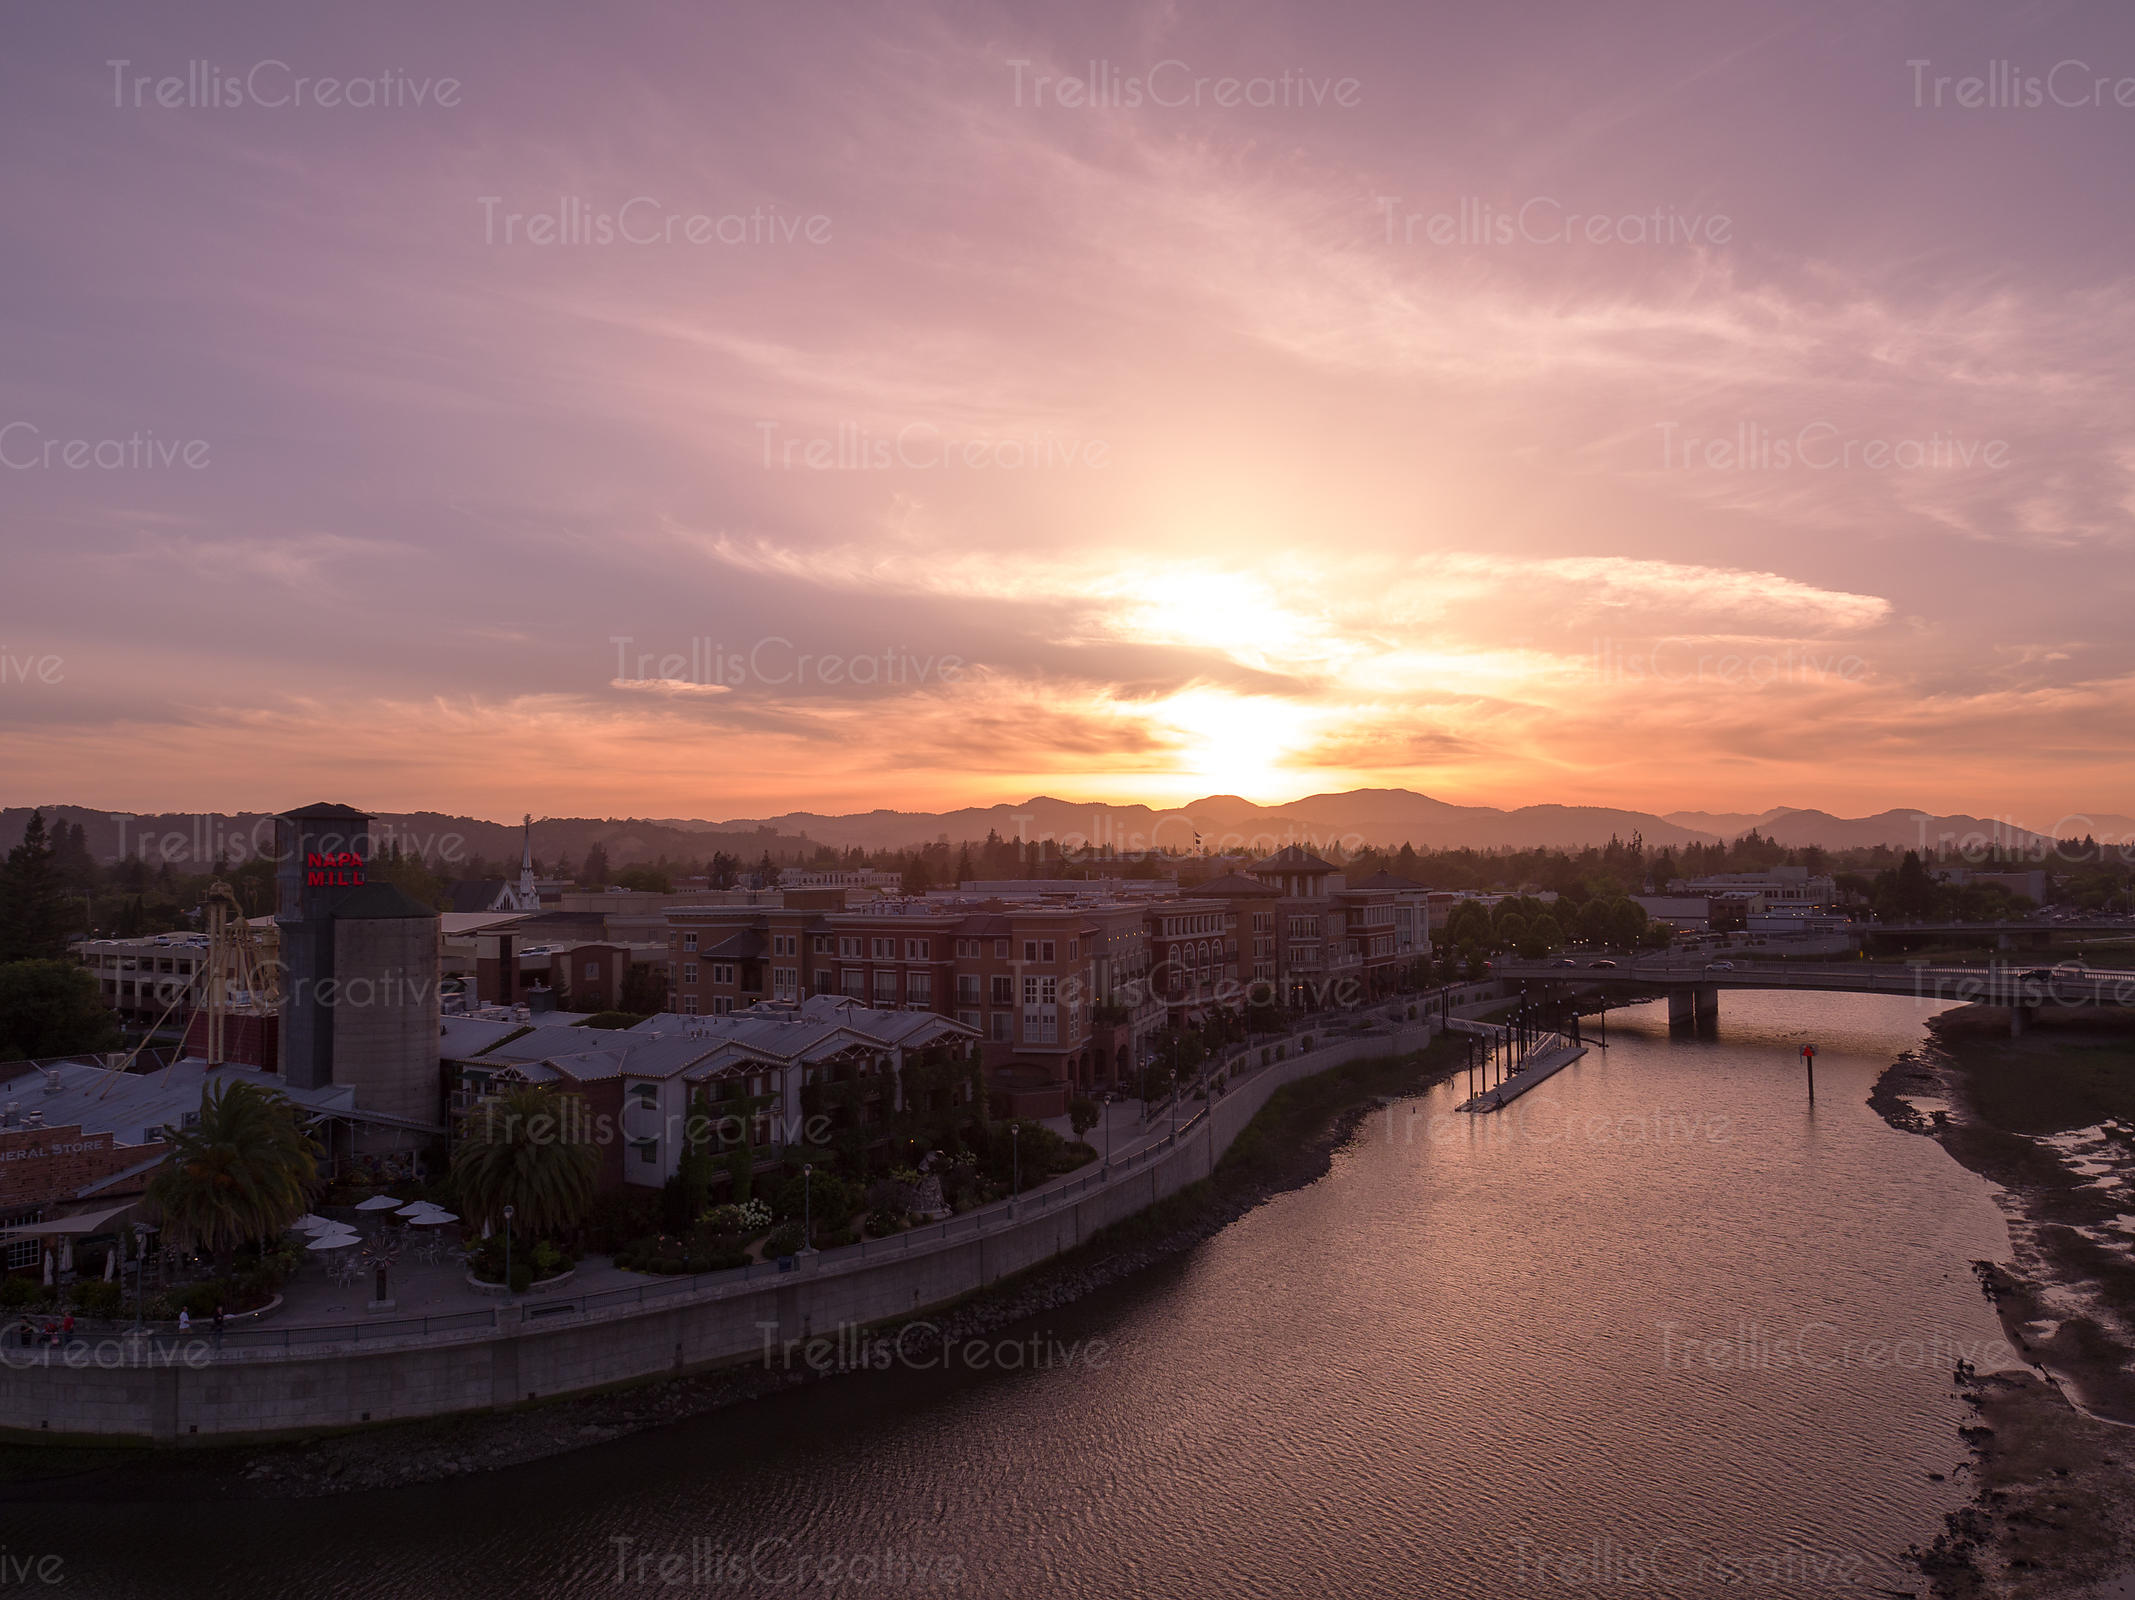 Drone aerial photo of Napa River flowing through the downtown Napa Waterfront, Napa Valley, California, USA.